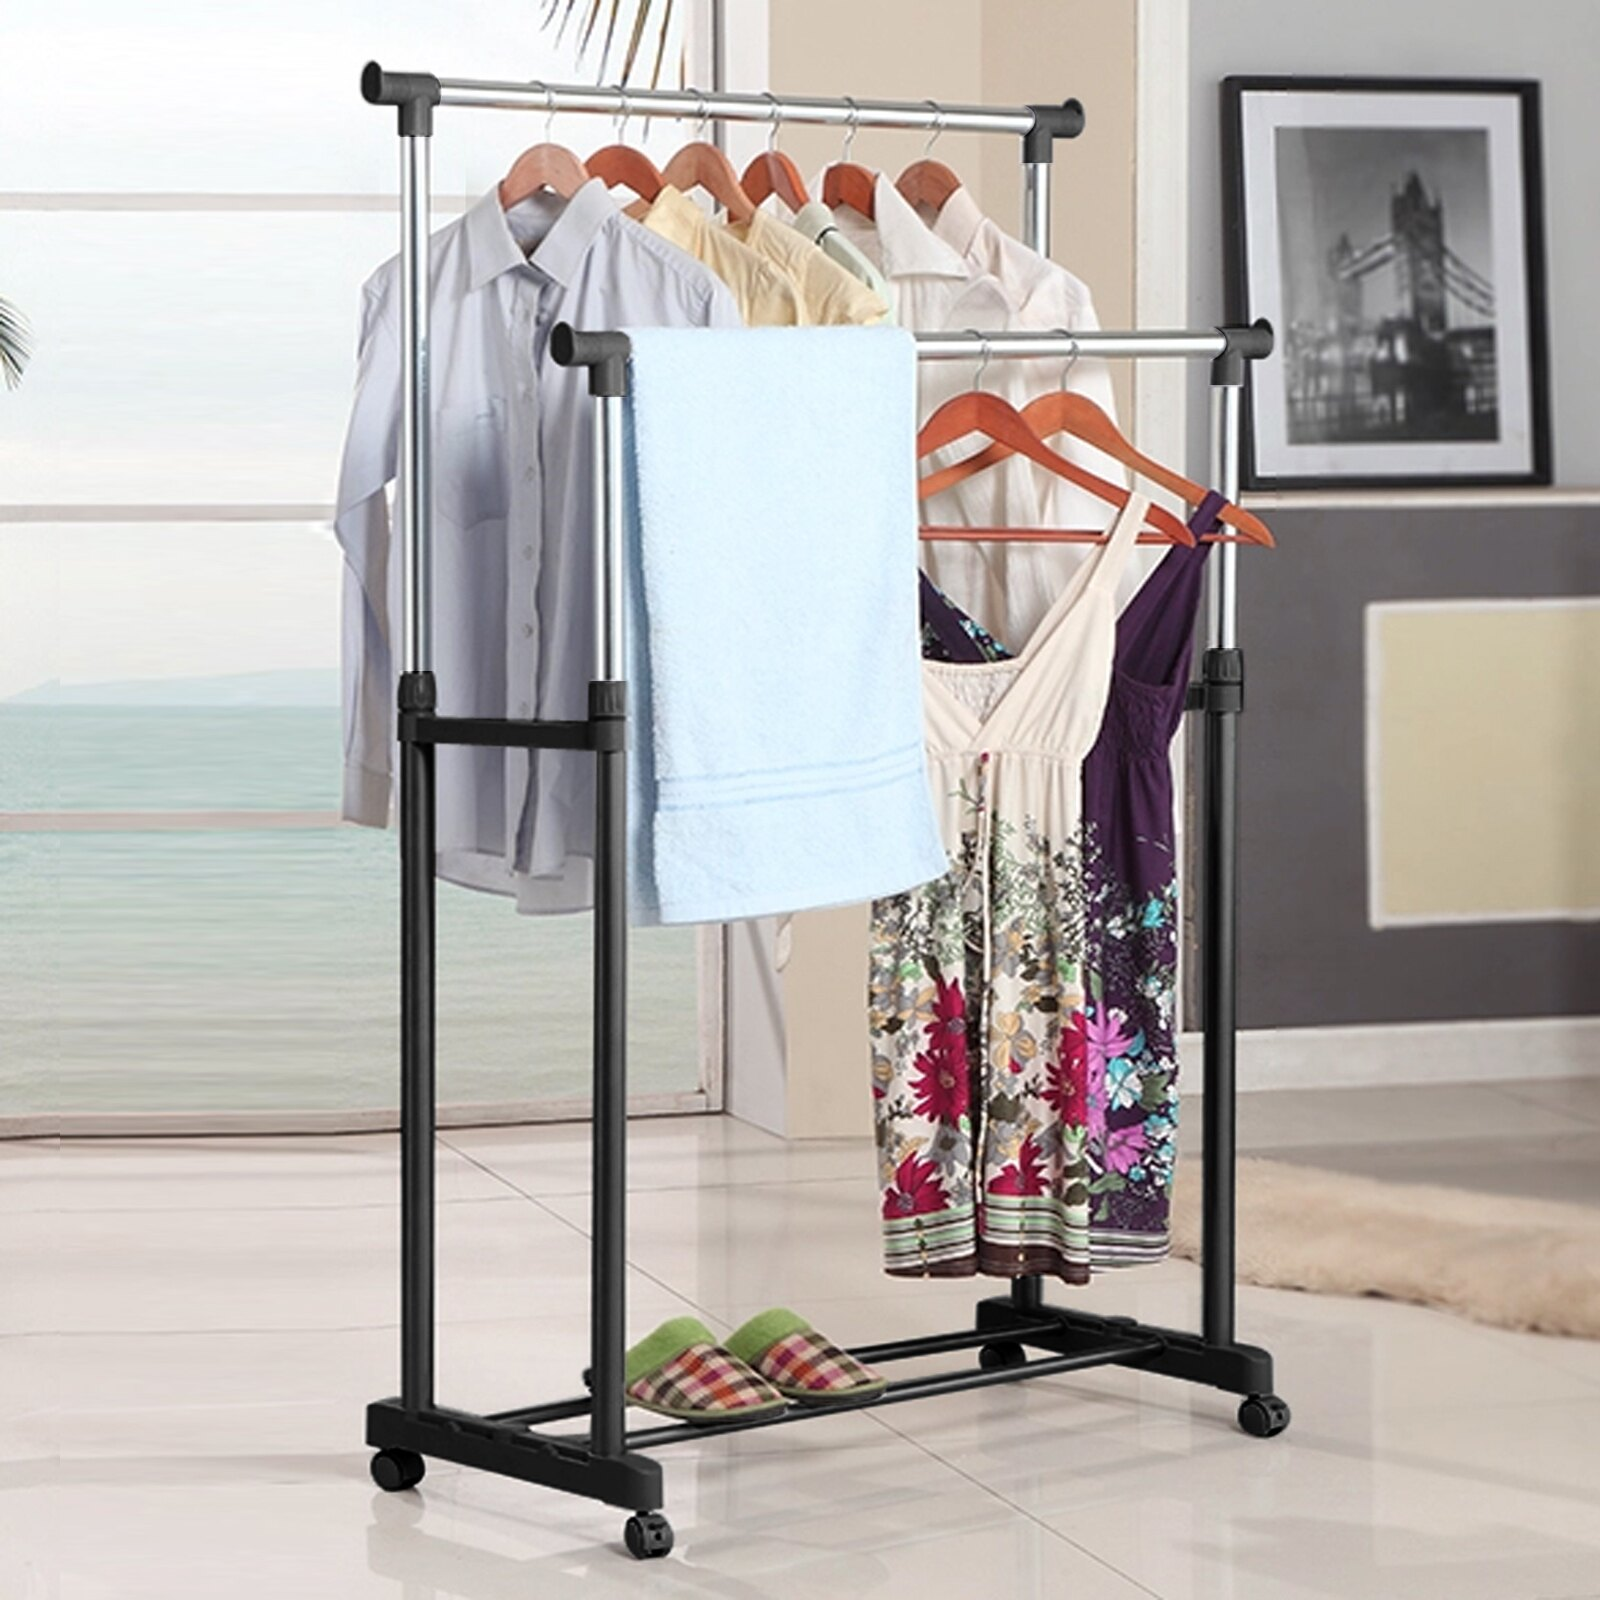 white hanging systems itm closet organizer adjustable wardrobe shelving vertical